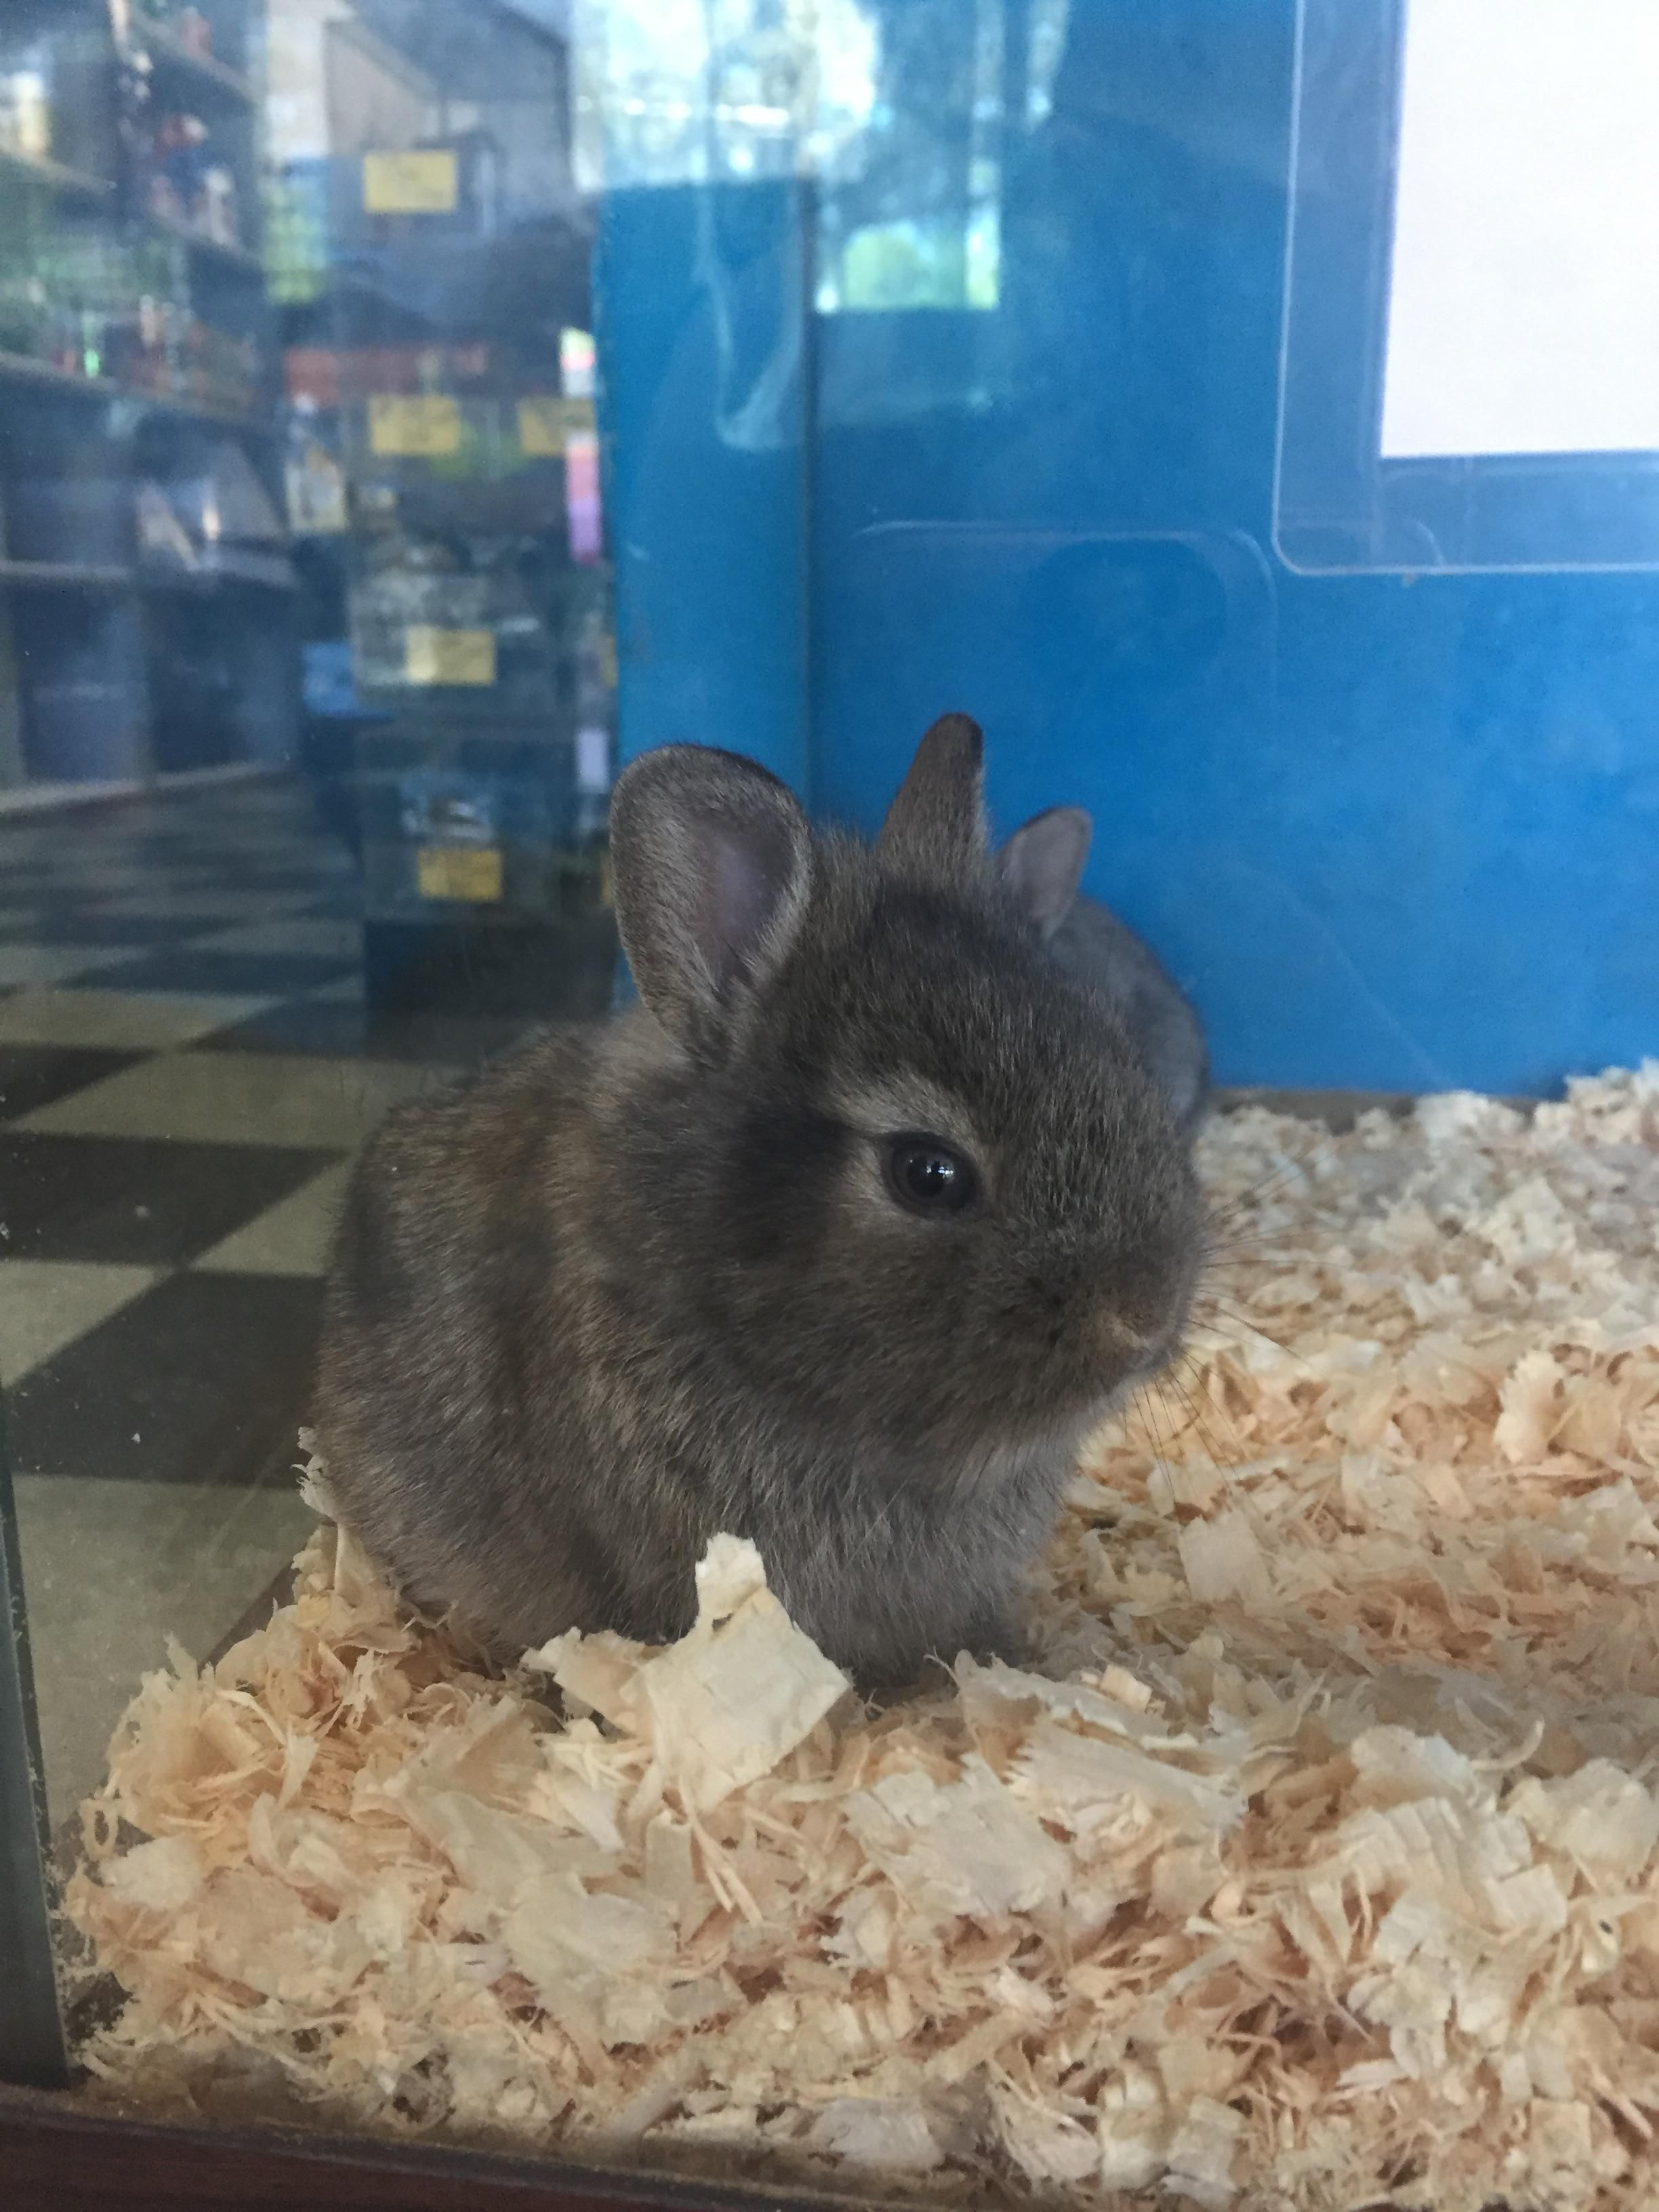 This Is The Smol Est Bunny Ive Ever Seen Https Ift Tt 2pkoinb Pet Bunny Cute Animal Pictures Cute Animals